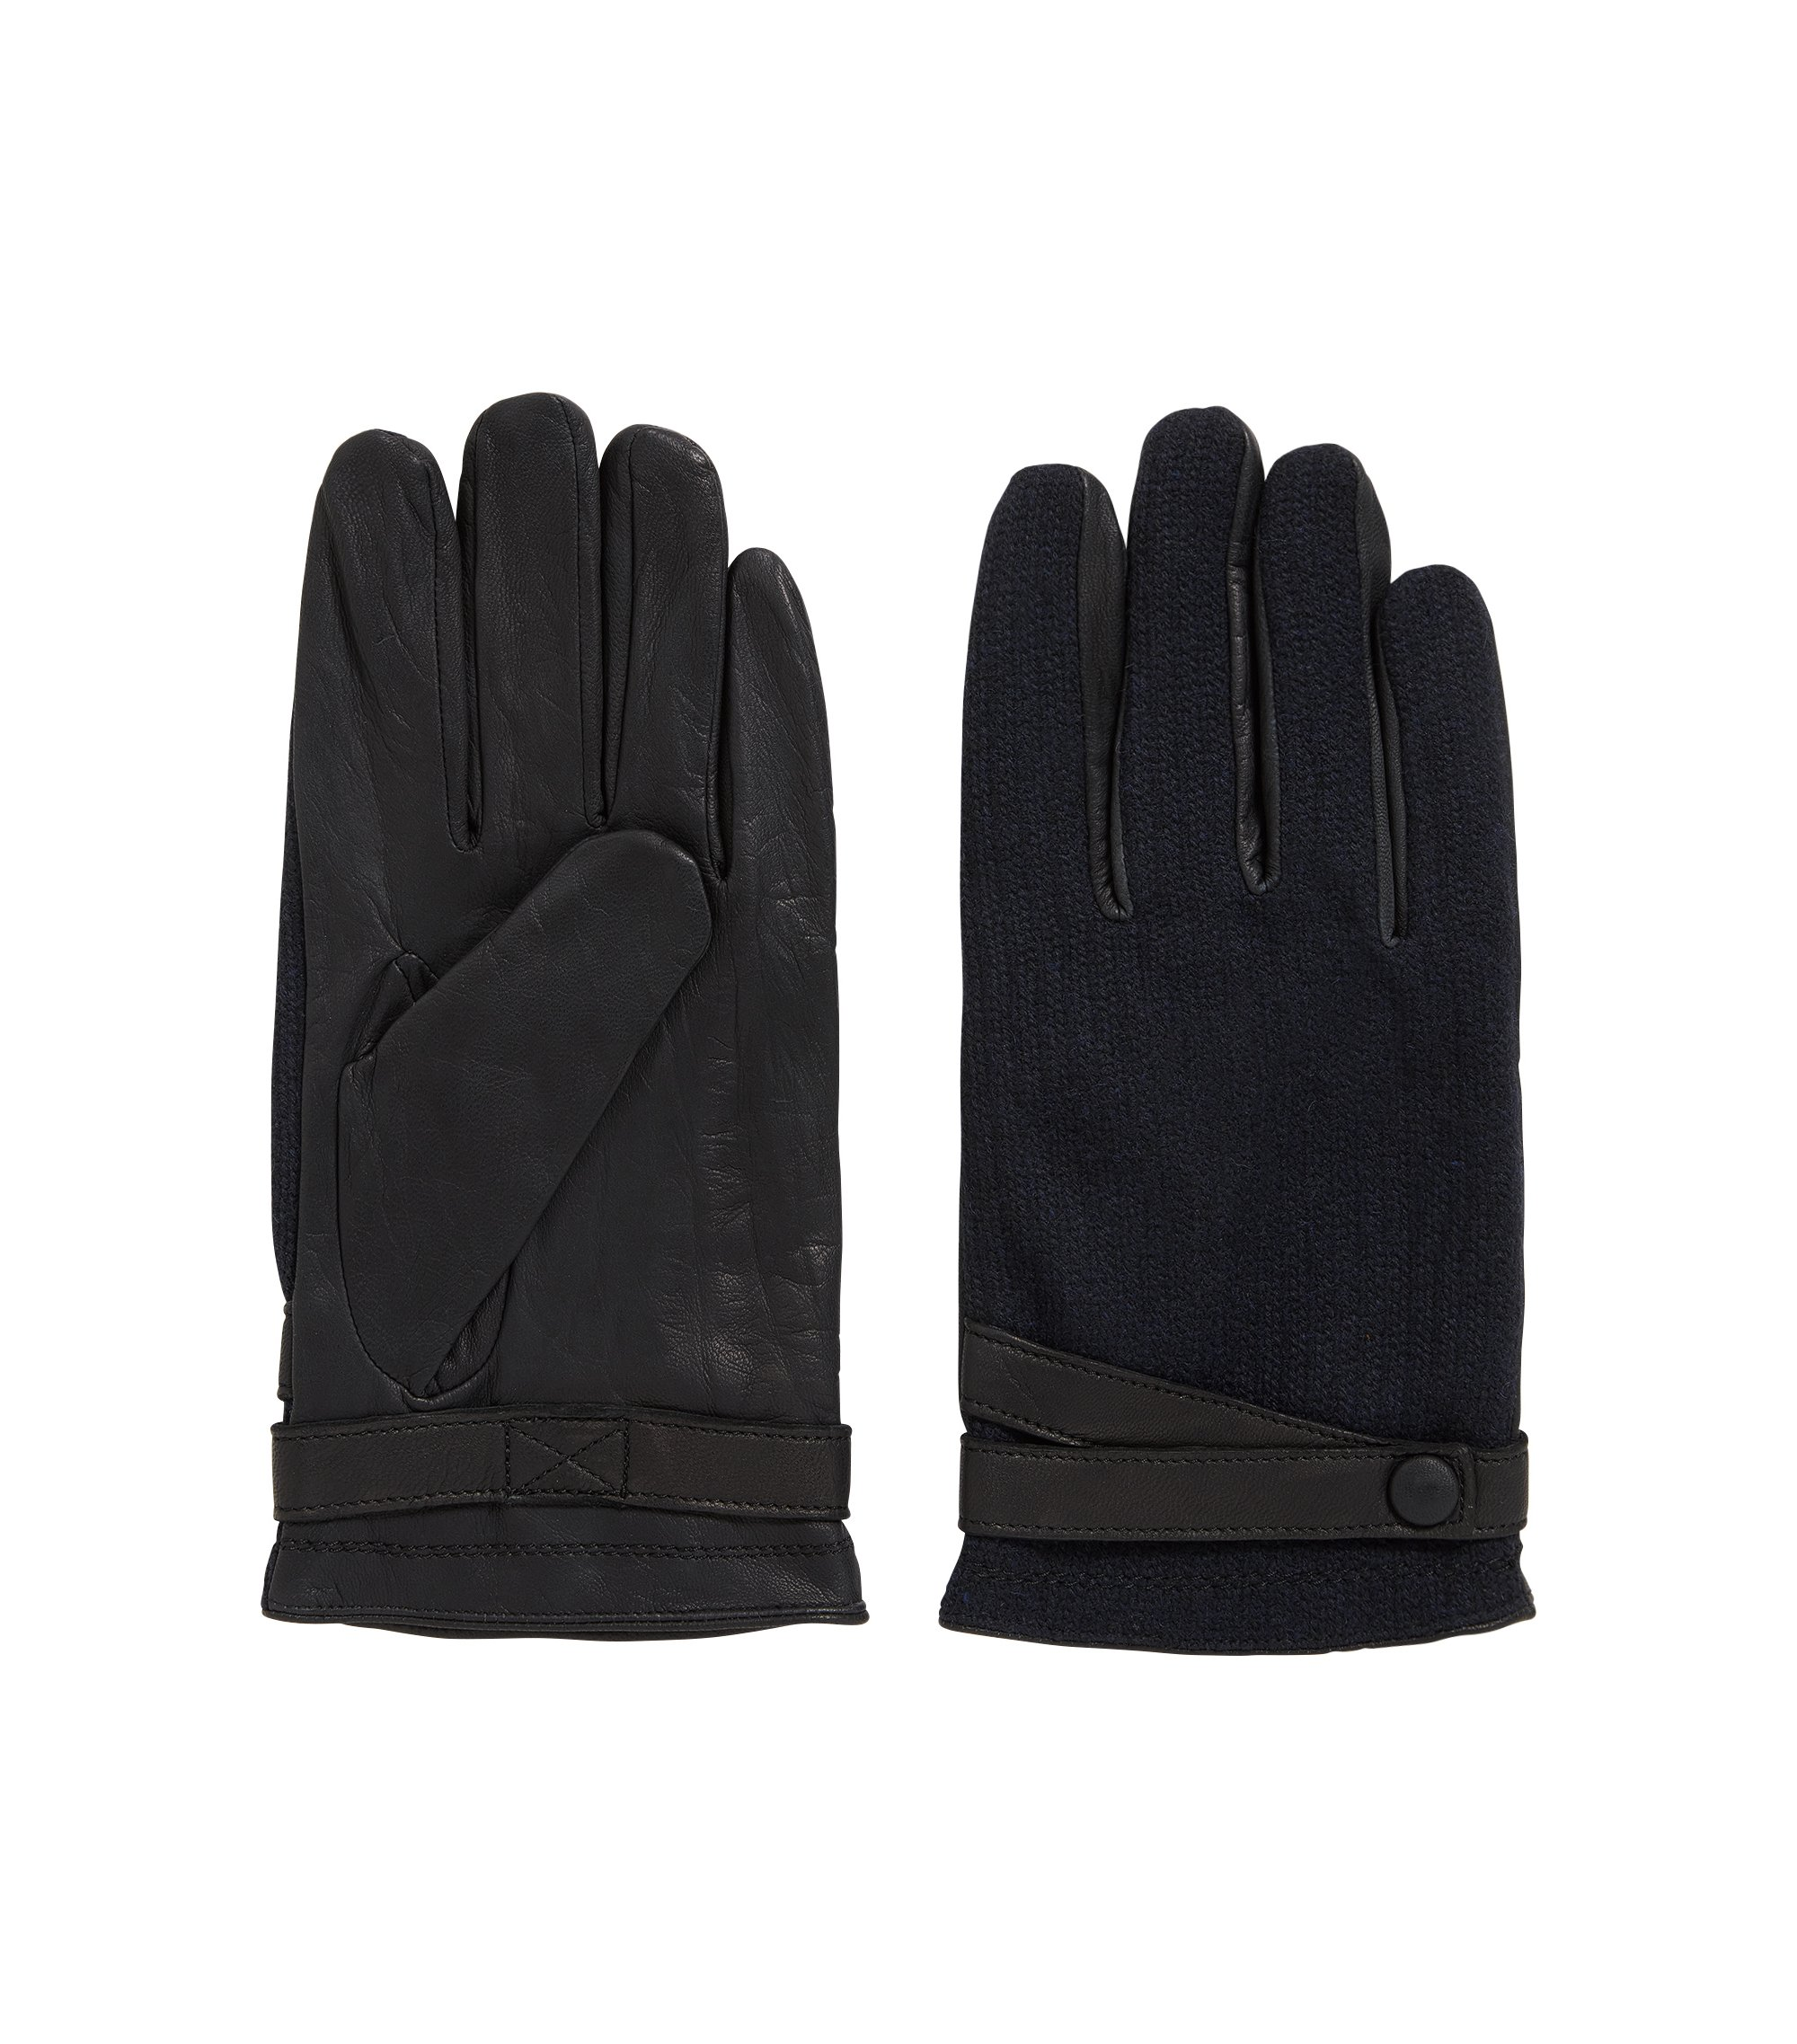 Nappa Leather & Wool Glove | Gossling, Black